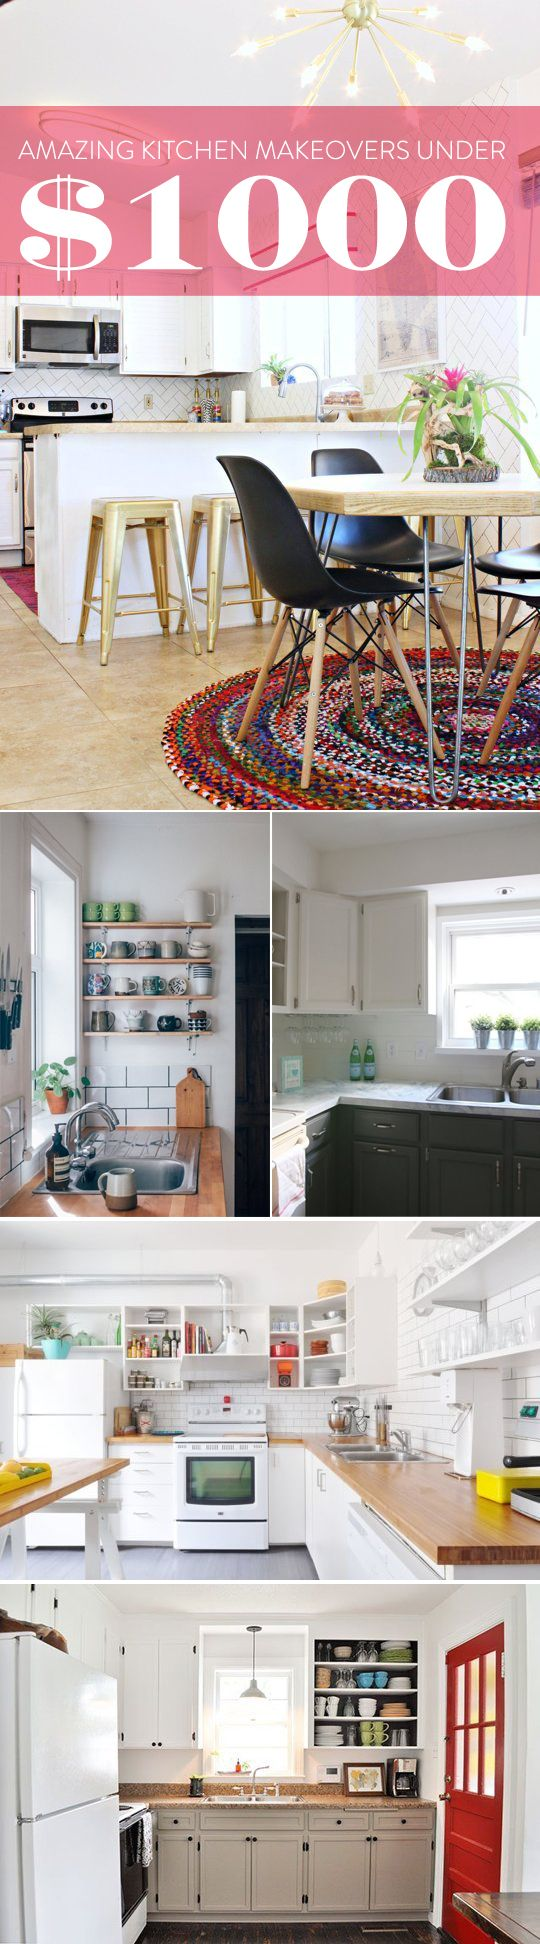 And bright kitchen update the little things apartment therapy - 246 Best Renovating Images On Pinterest Apartment Therapy Room And Kitchen